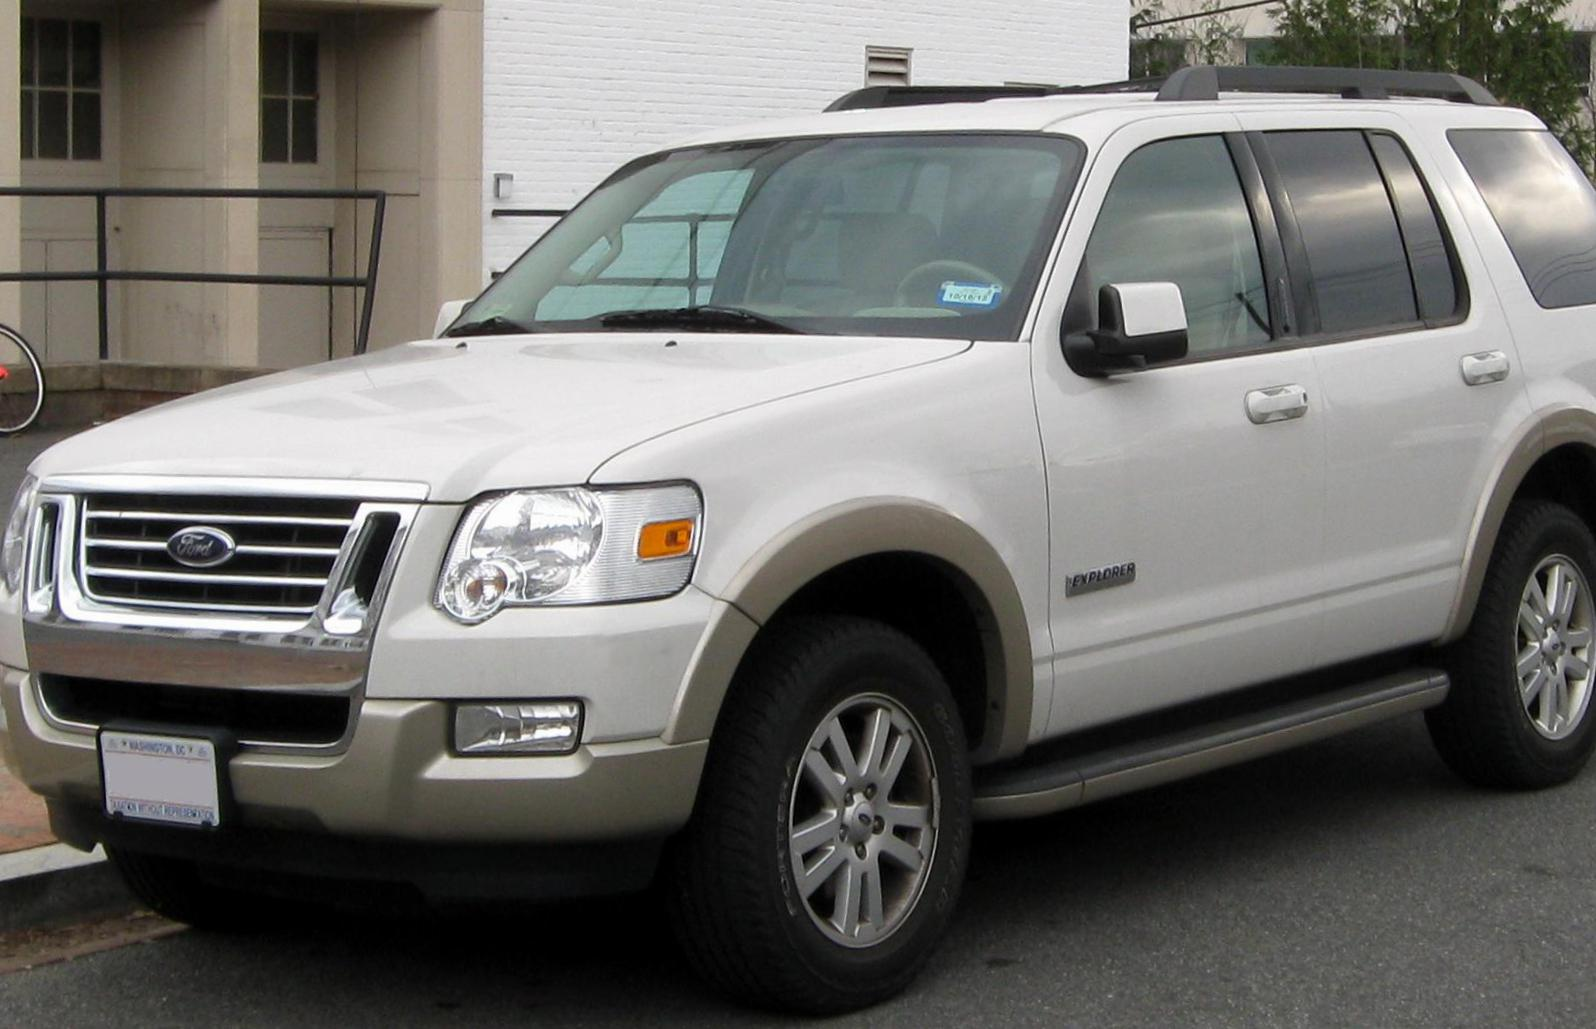 Ford explorer cost ford explorer cost 2006